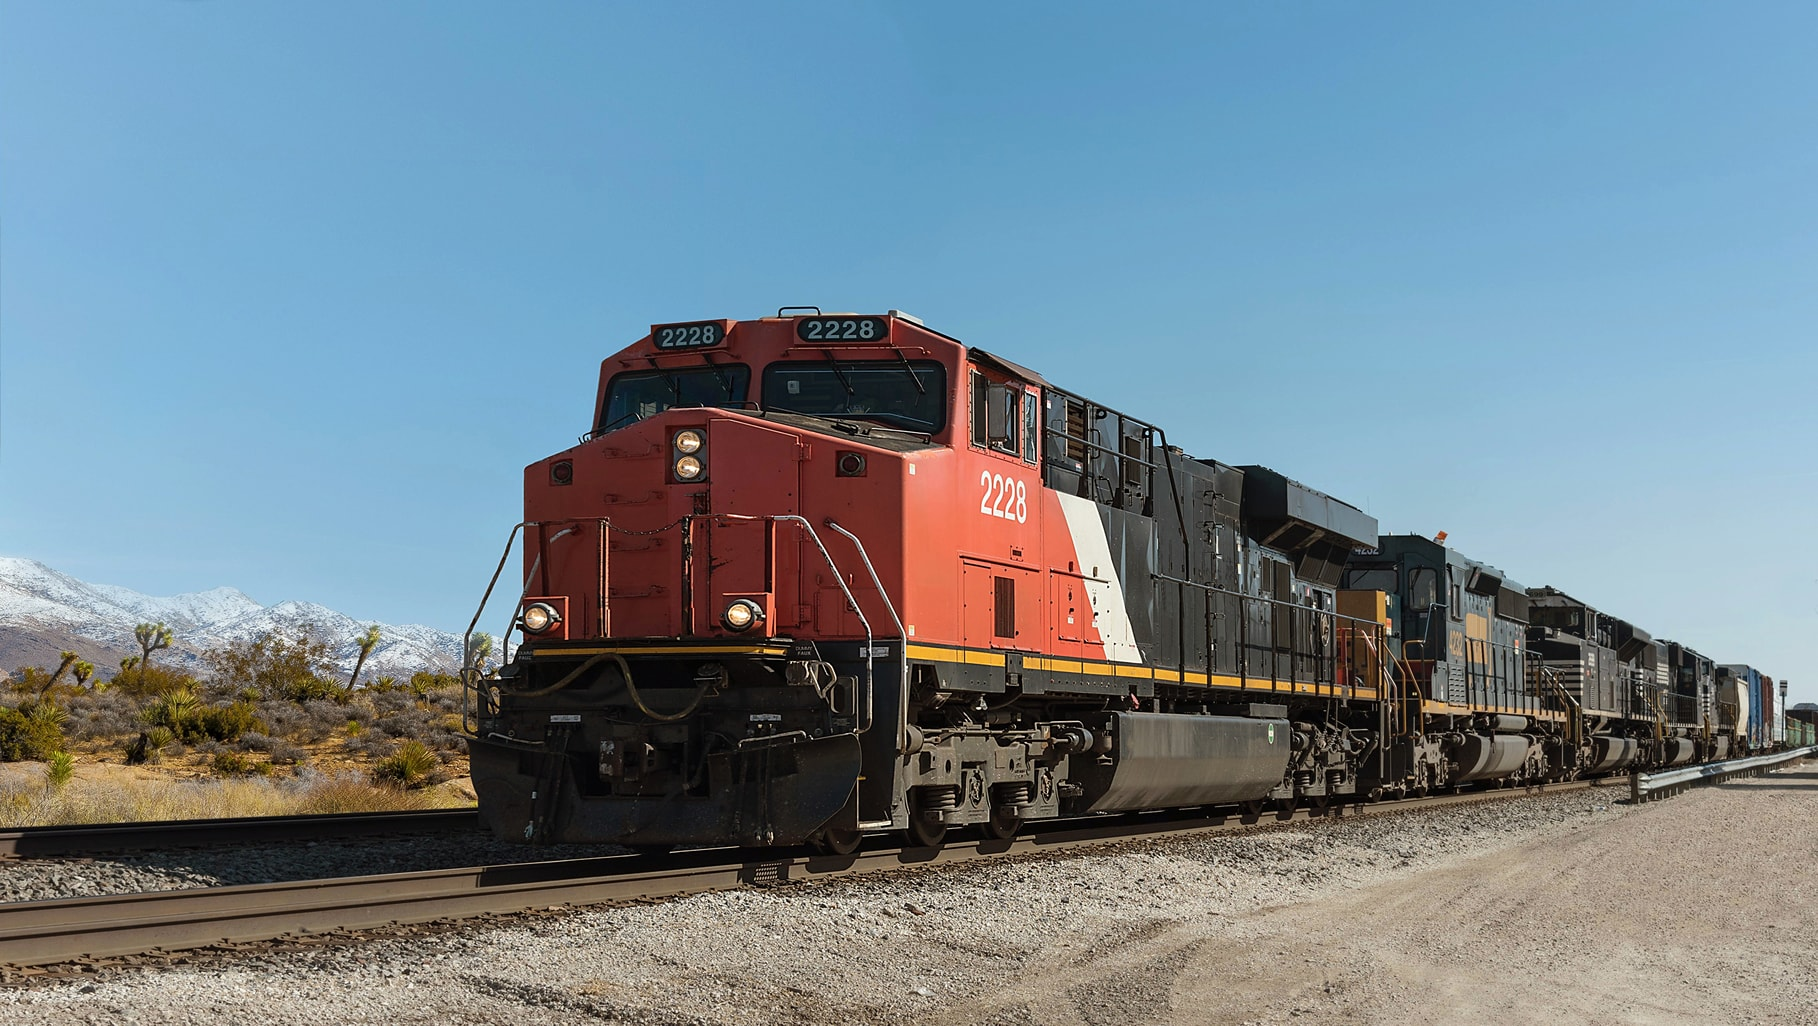 IOC transports agricultural and industrial chemicals via rail road classes I through III across the United States.